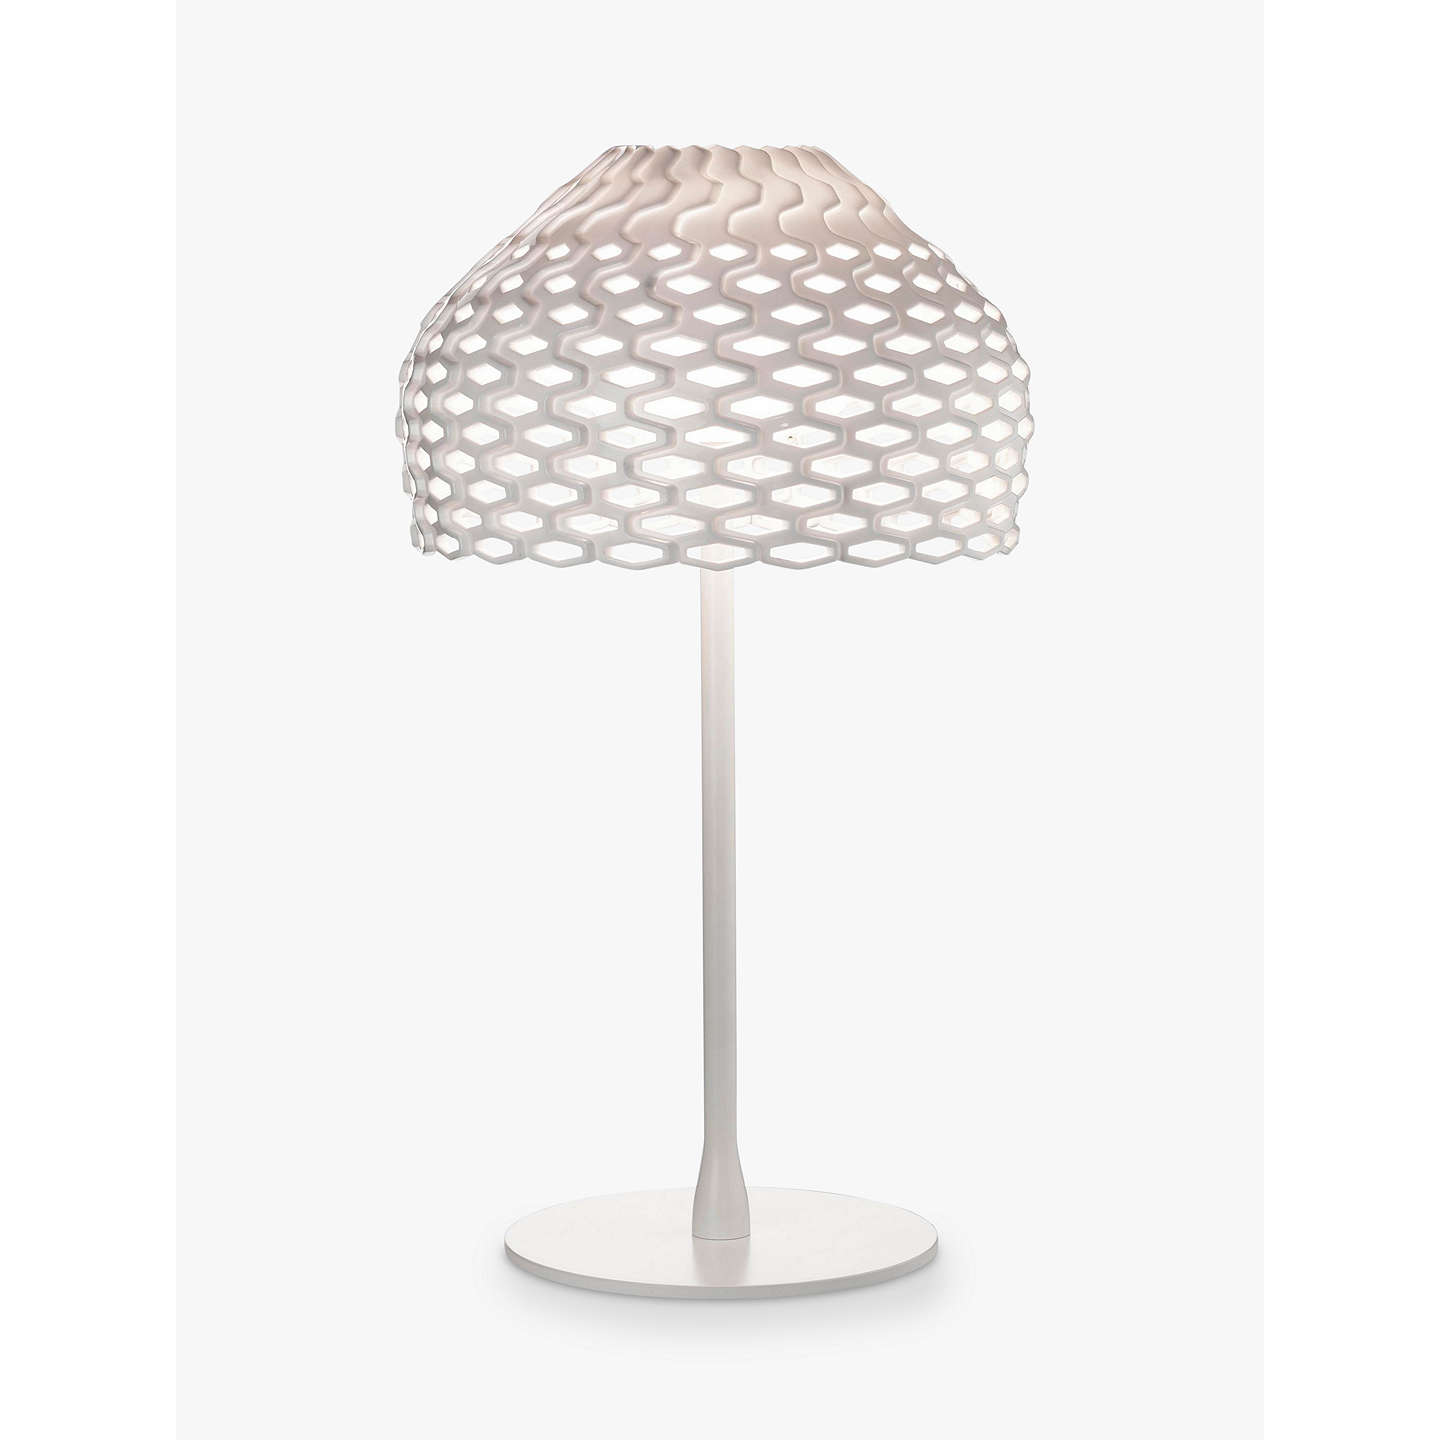 BuyFlos Tatou T1 Table Lamp, White Online at johnlewis.com